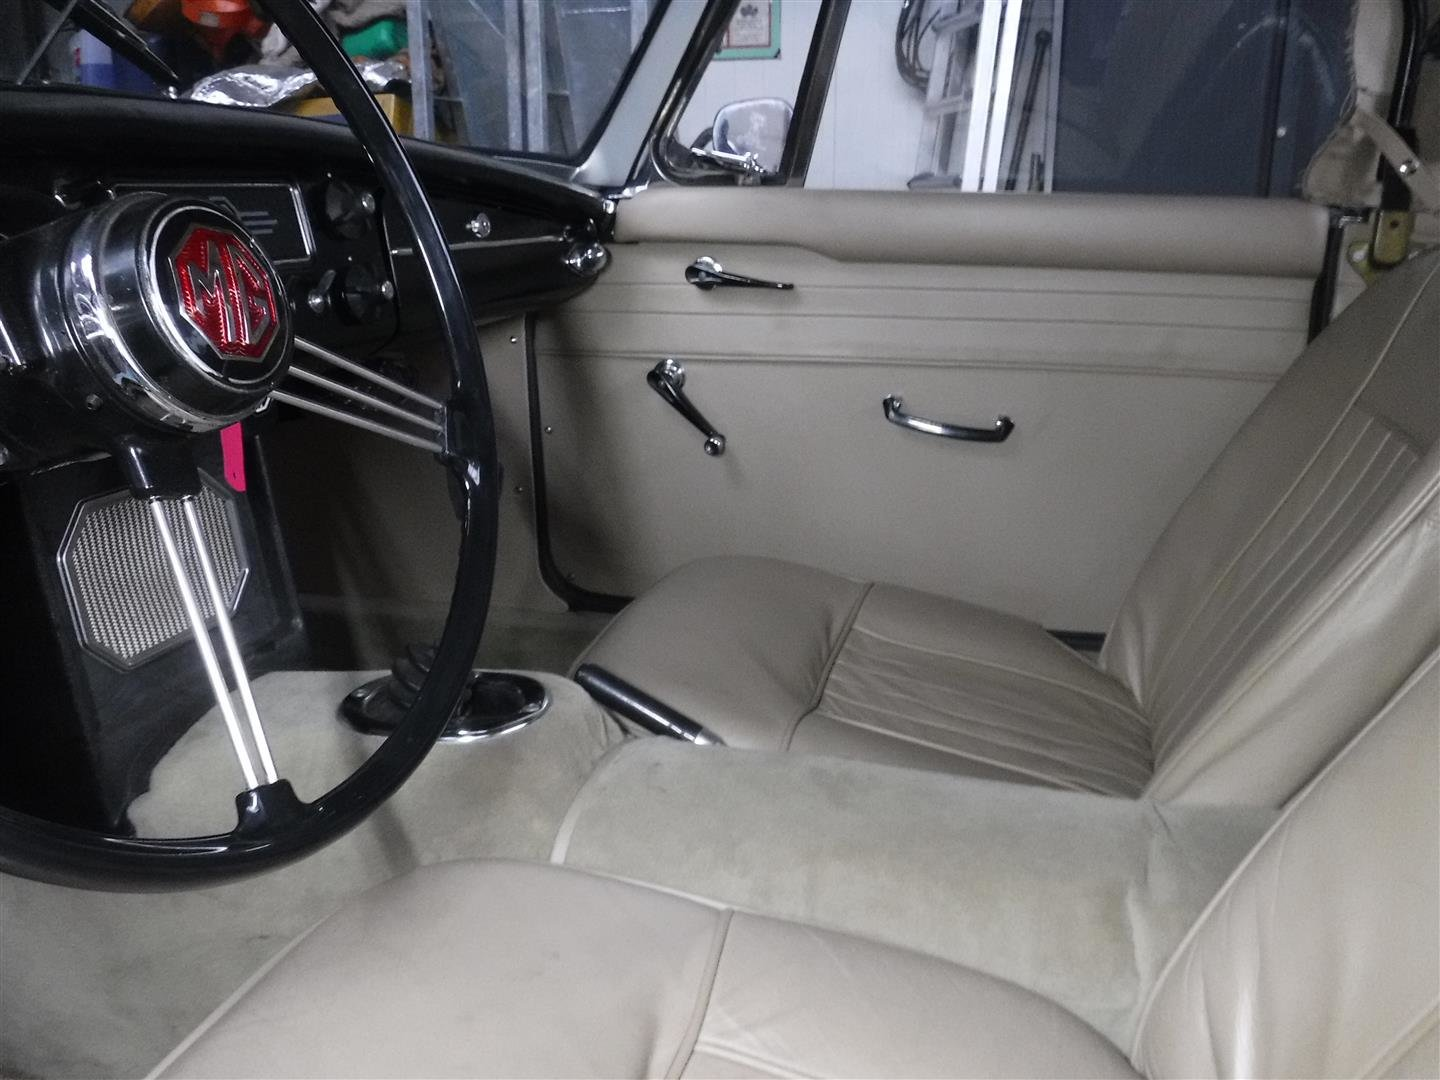 1968 MG B cabrio (In Britsh Racing Green!) For Sale (picture 3 of 6)